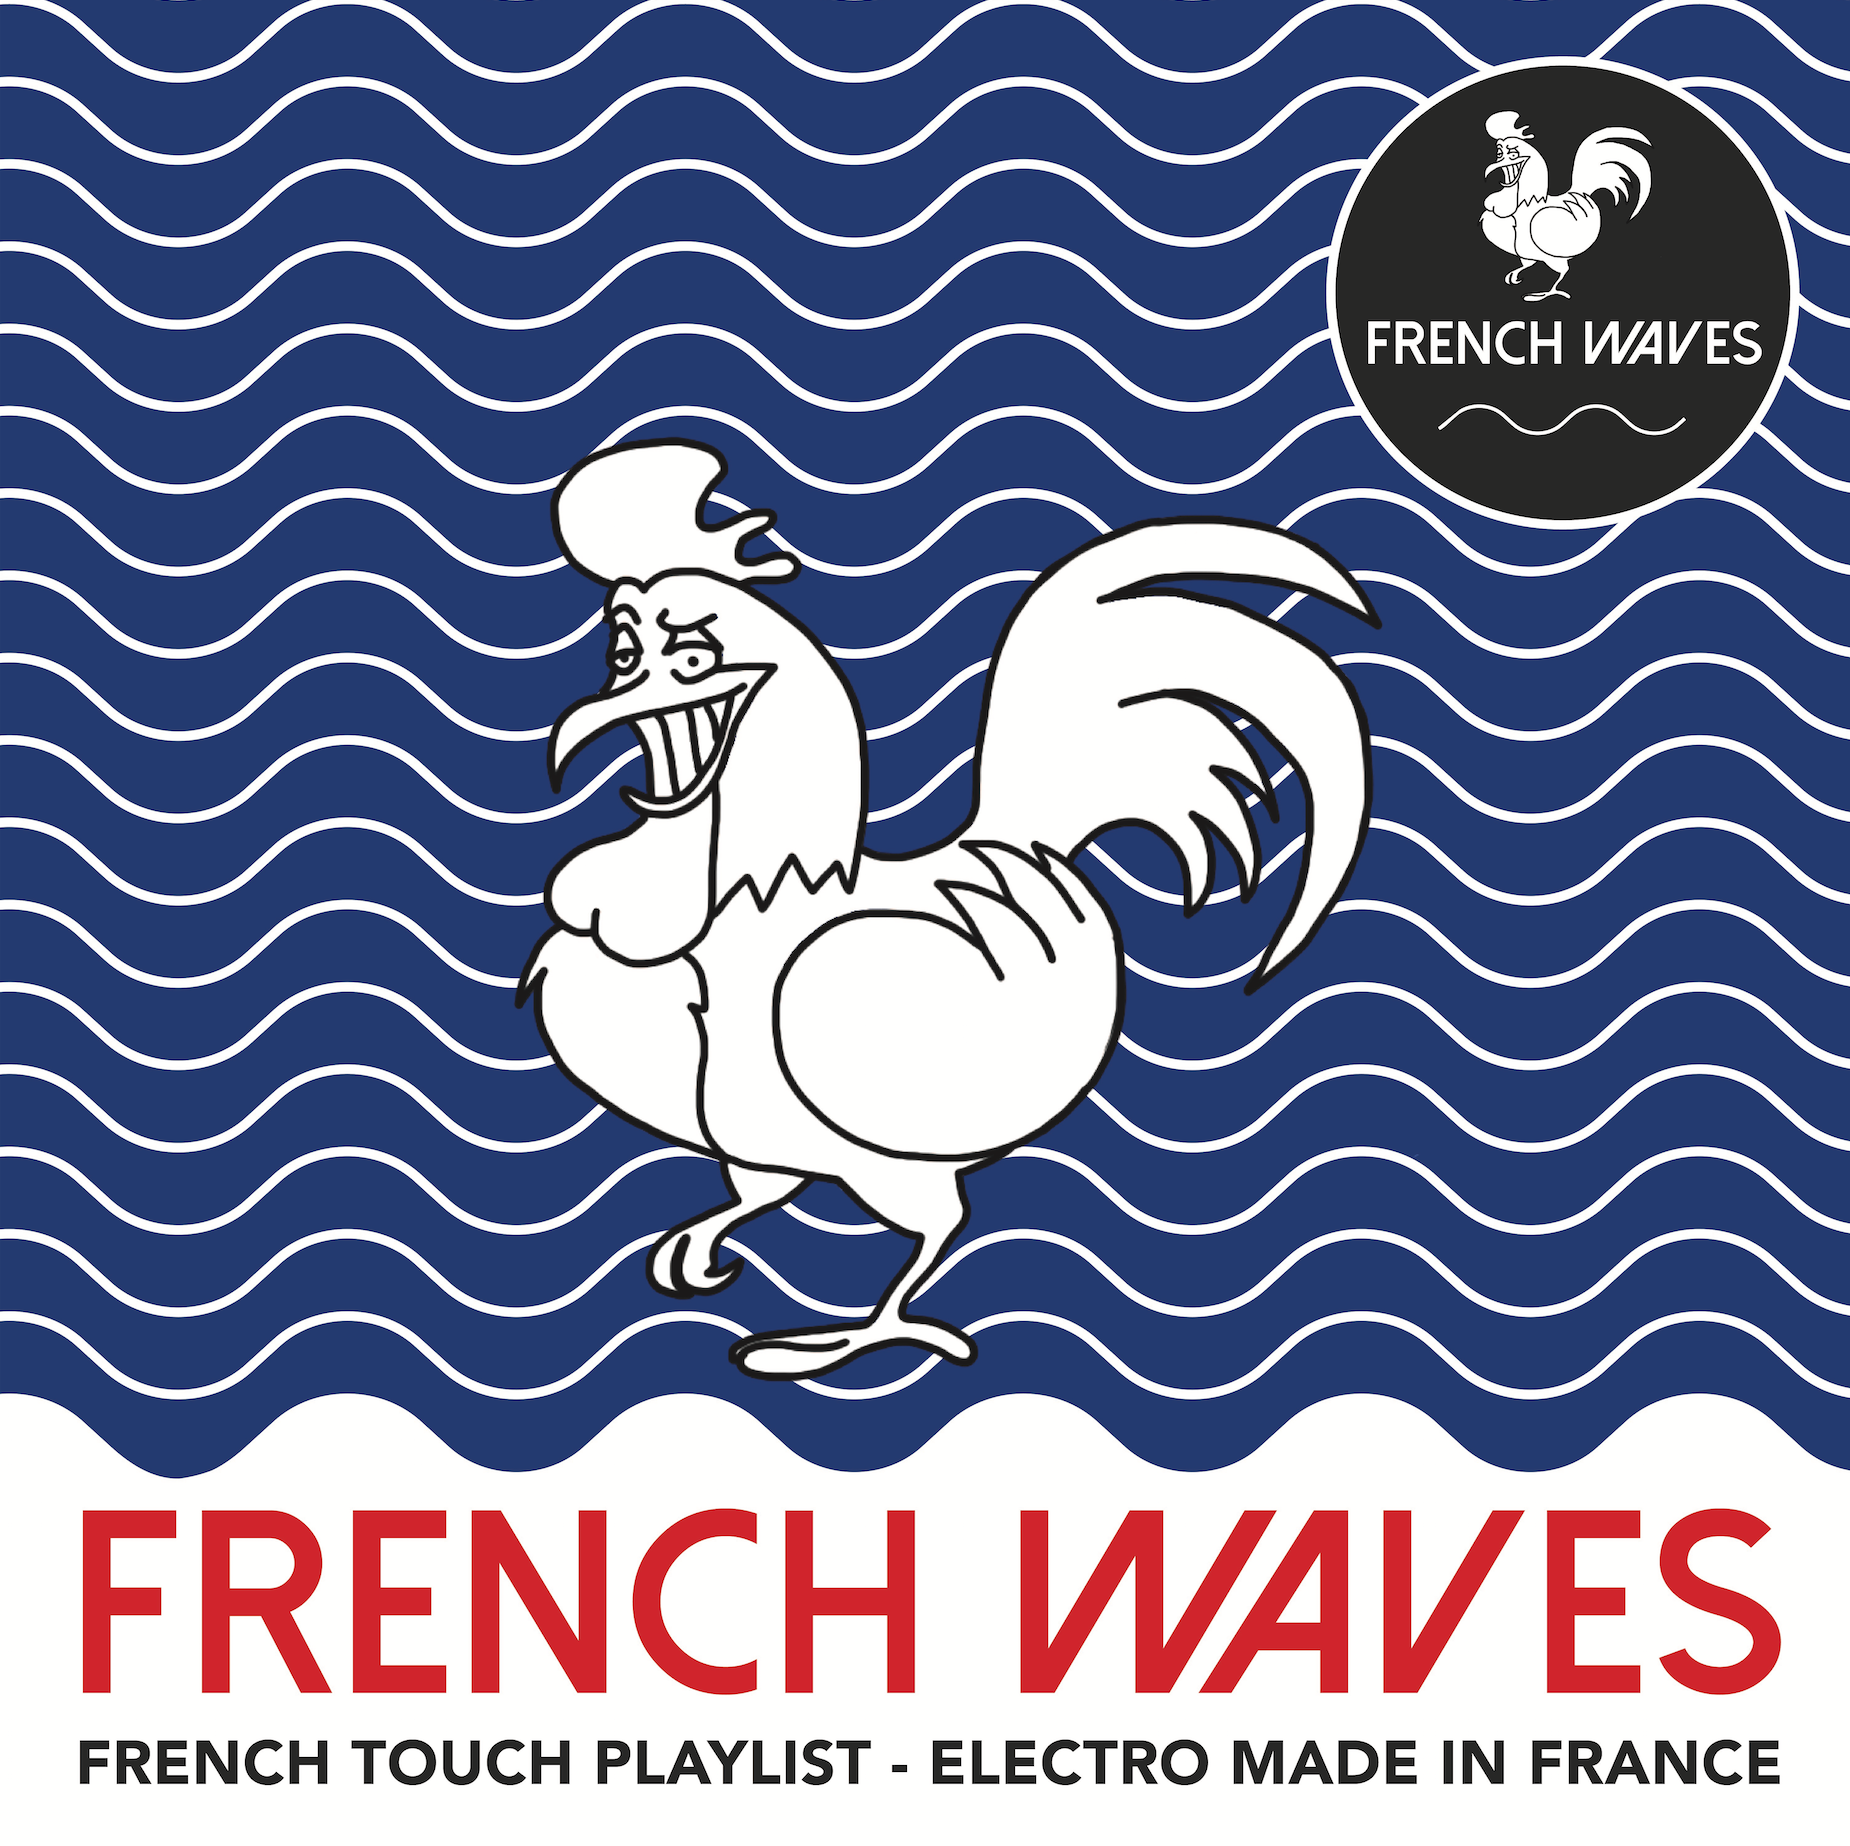 frenchwaves